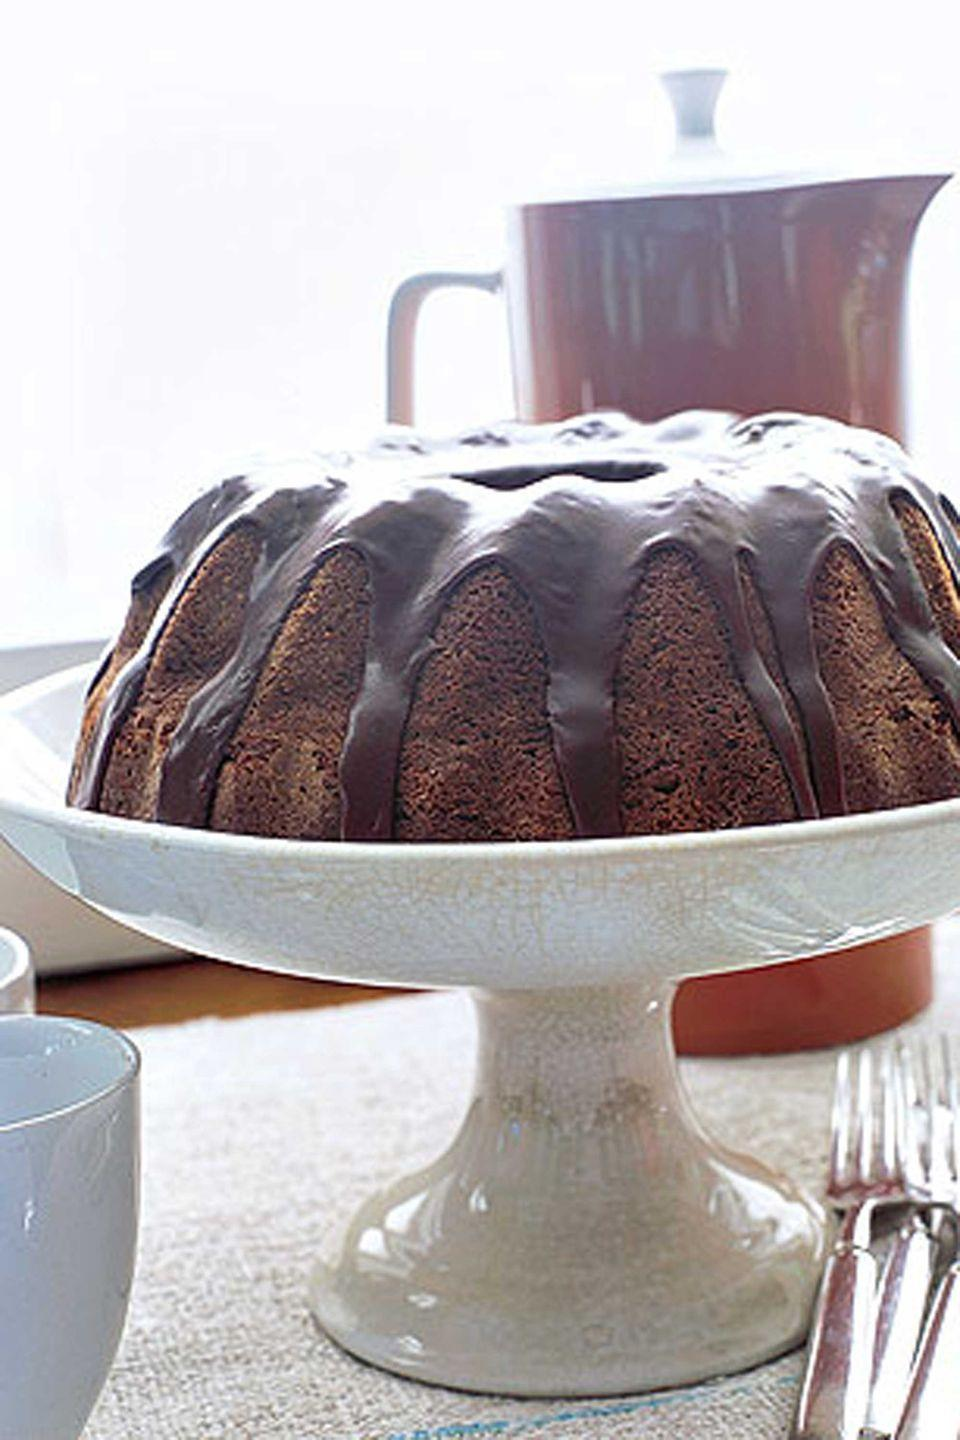 "<p>The cocoa and fresh coffee provide an added kick to a traditional applesauce cake.</p><p><strong><a href=""https://www.countryliving.com/food-drinks/recipes/a887/grandmas-applesauce-cake-2989/"" rel=""nofollow noopener"" target=""_blank"" data-ylk=""slk:Get the recipe"" class=""link rapid-noclick-resp"">Get the recipe</a>.</strong></p>"